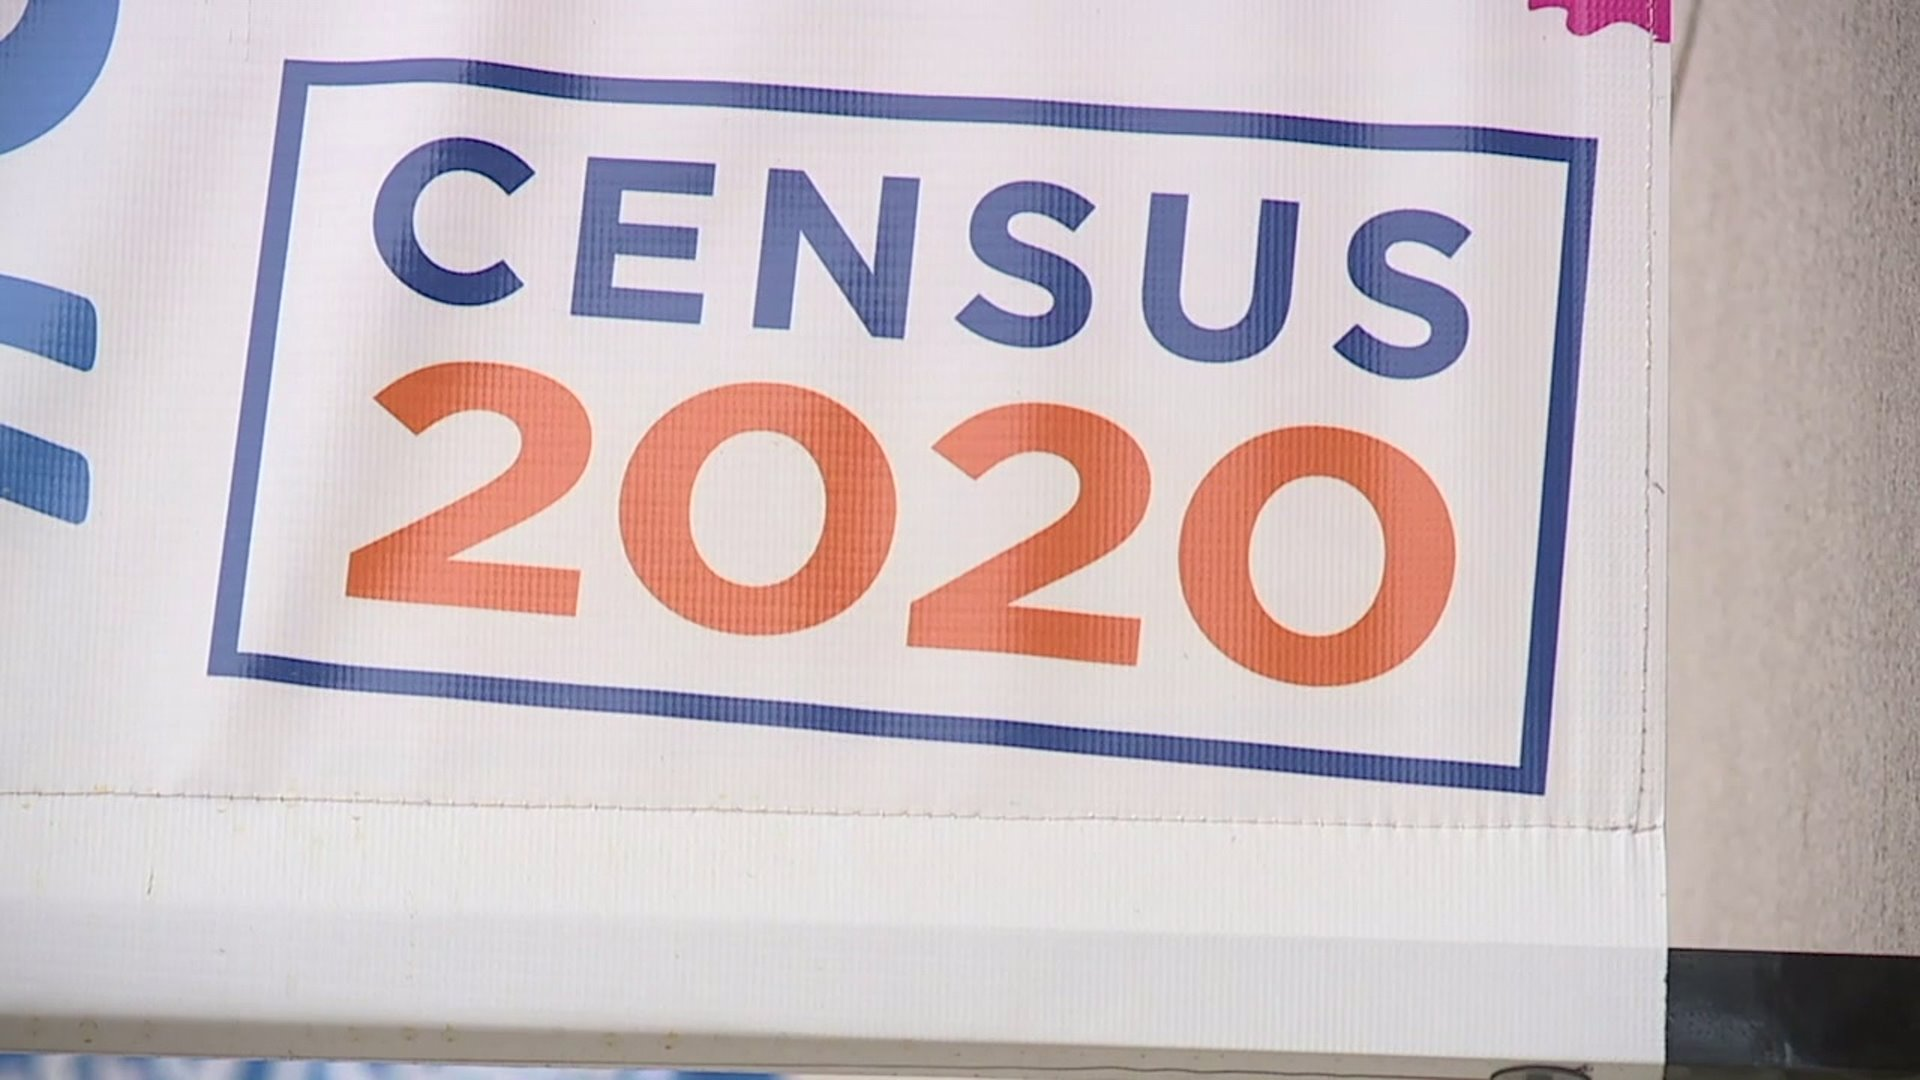 April 1st is Census Day